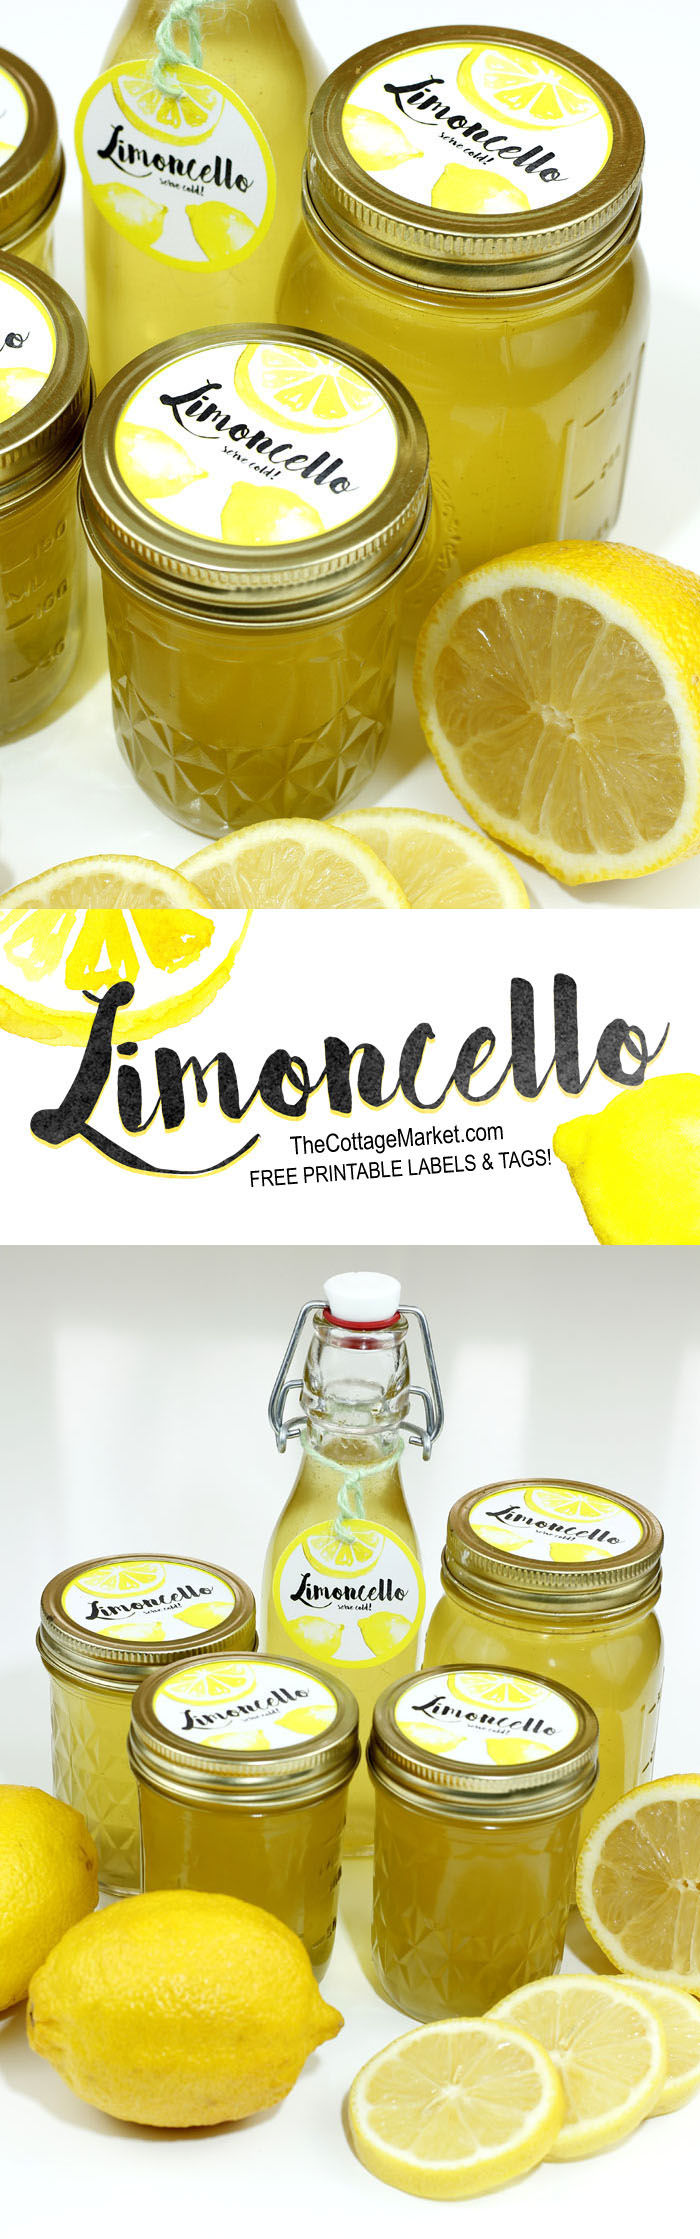 Use these free label printables to customize your homemade limoncello.